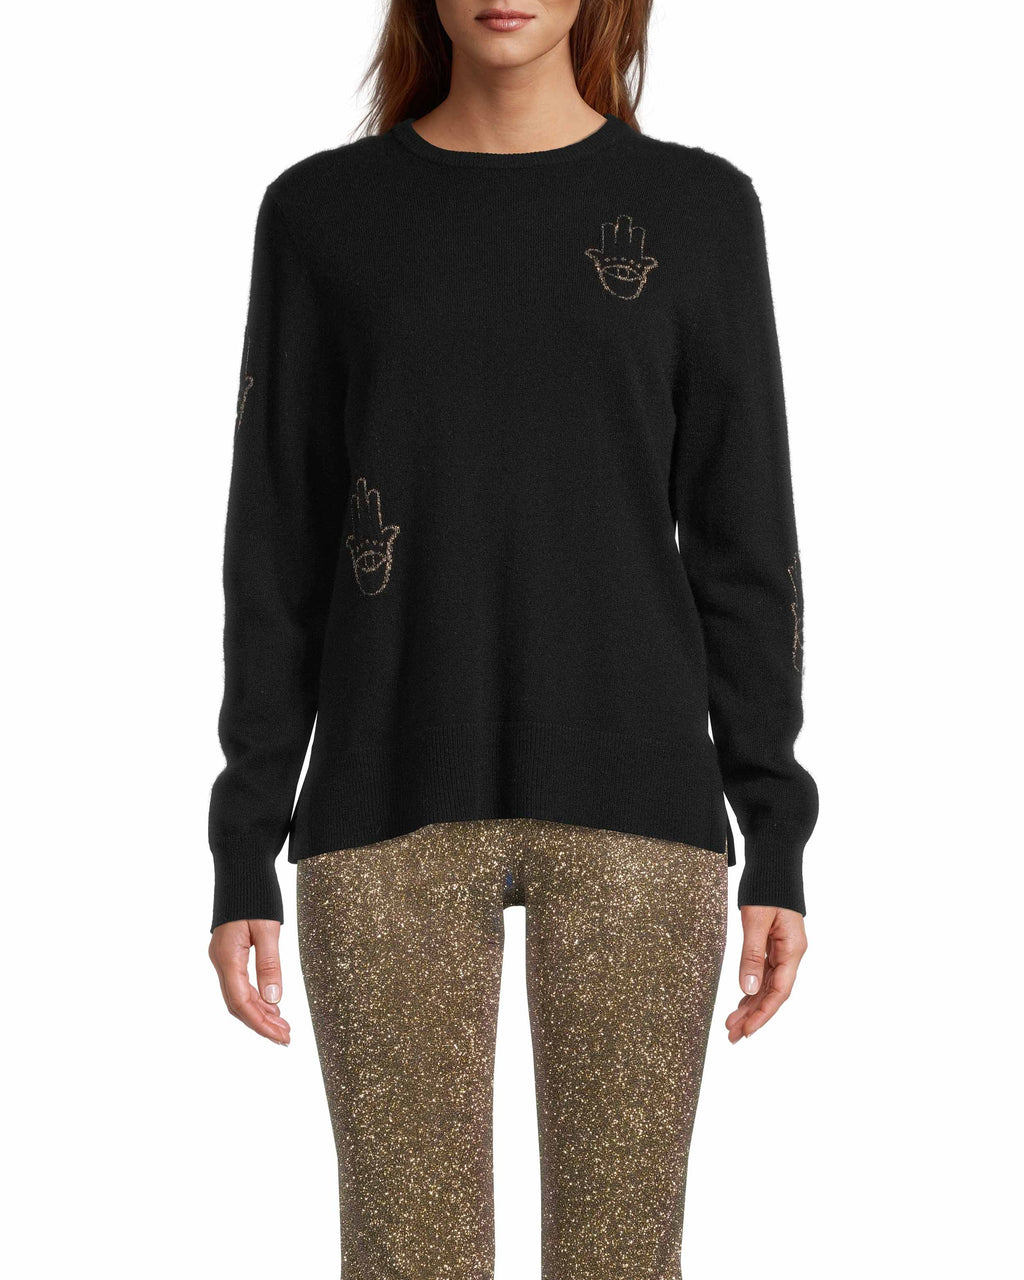 CT18318 - HAMSA LONG SLEEVE SWEATER - tops - knitwear - This sweater is designed in a classic crew neck silhouette with gold threaded hamsas throughout. The Hamsa is a universal protectvie sign that brings happiness, luck and health to its owner. Add 1 line break Stylist tip: Style with your favorite denim for a laidback but elevated look.